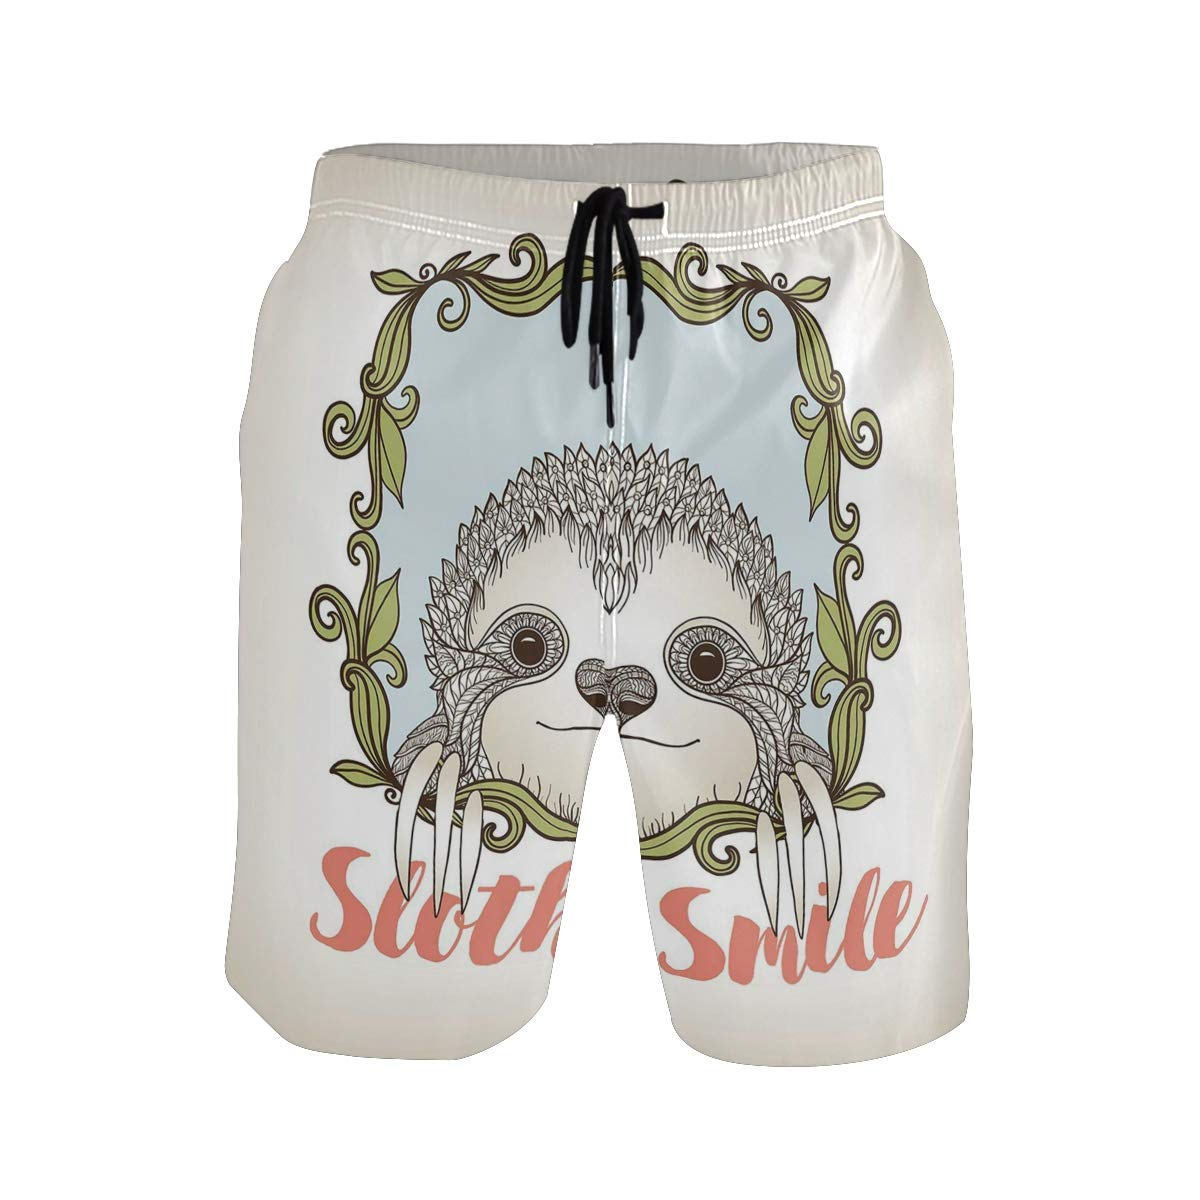 COVASA Mens Summer ShortsExotic Animal in Floral Frame Sloth Smile Theme with